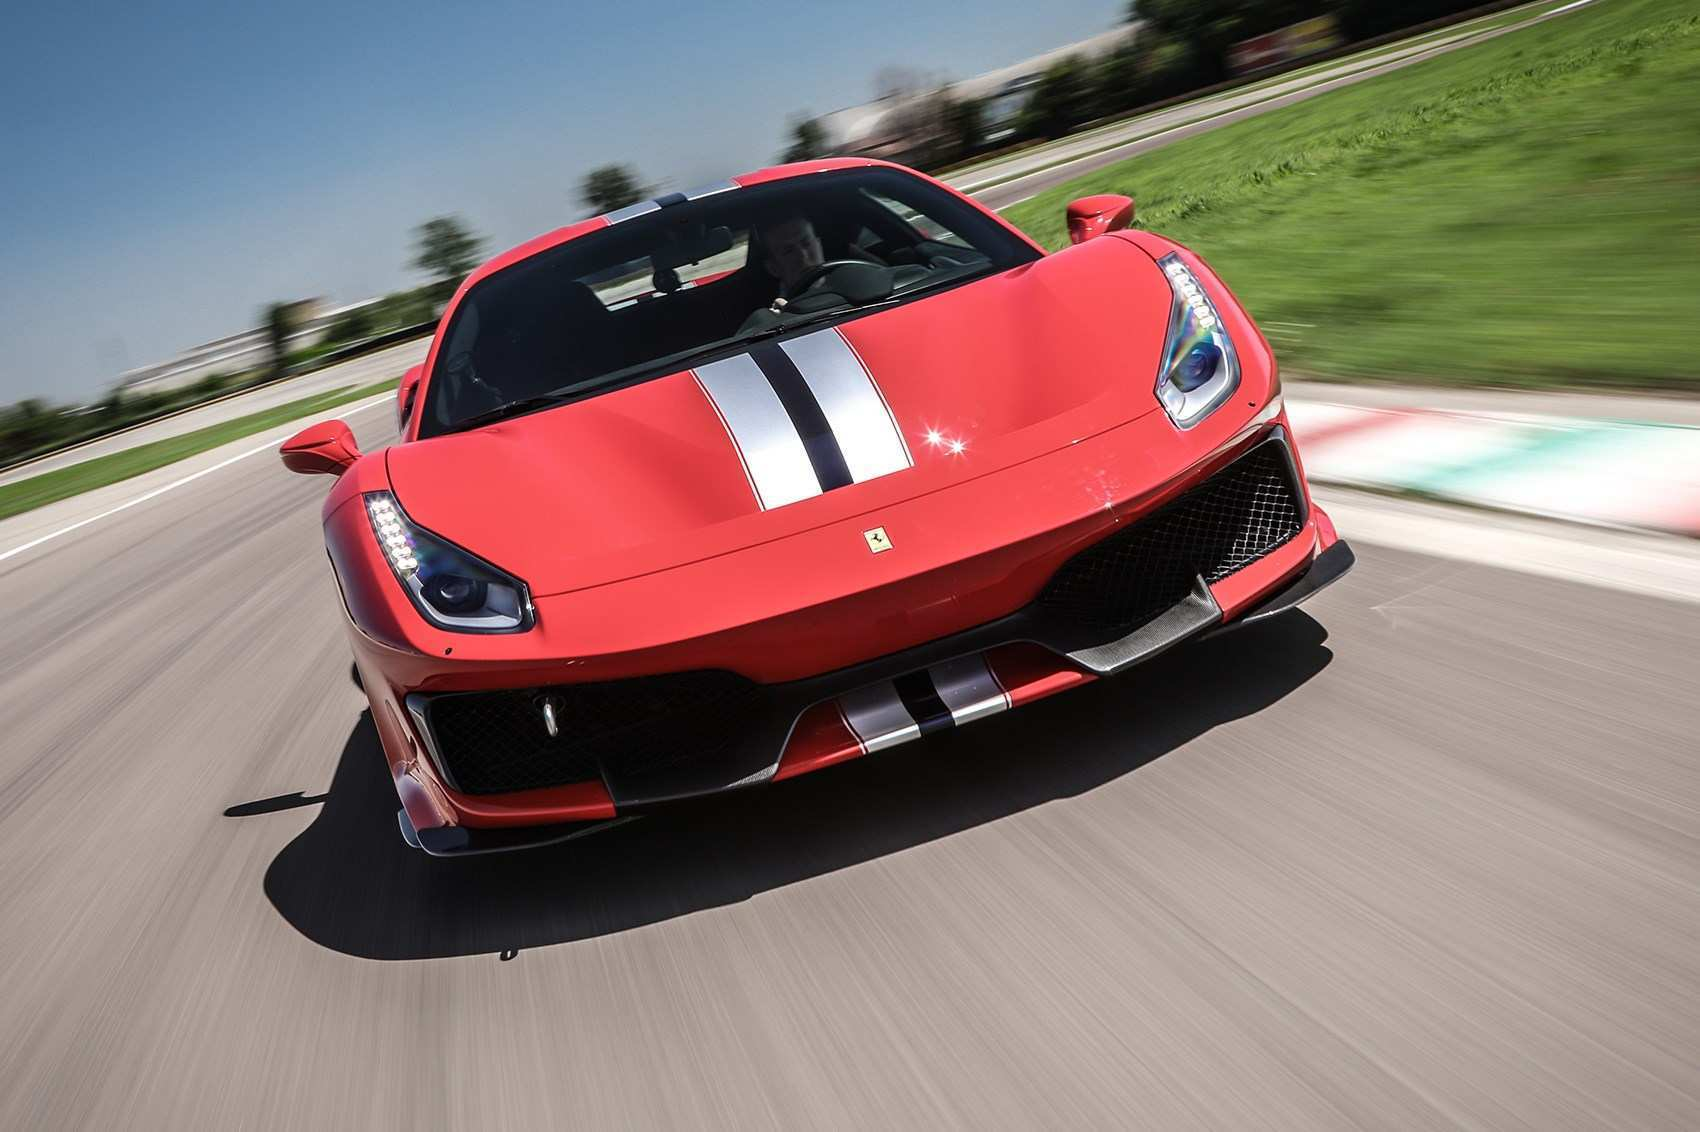 64 Concept of Best 2019 Ferrari 488 Pista Review Redesign Style by Best 2019 Ferrari 488 Pista Review Redesign